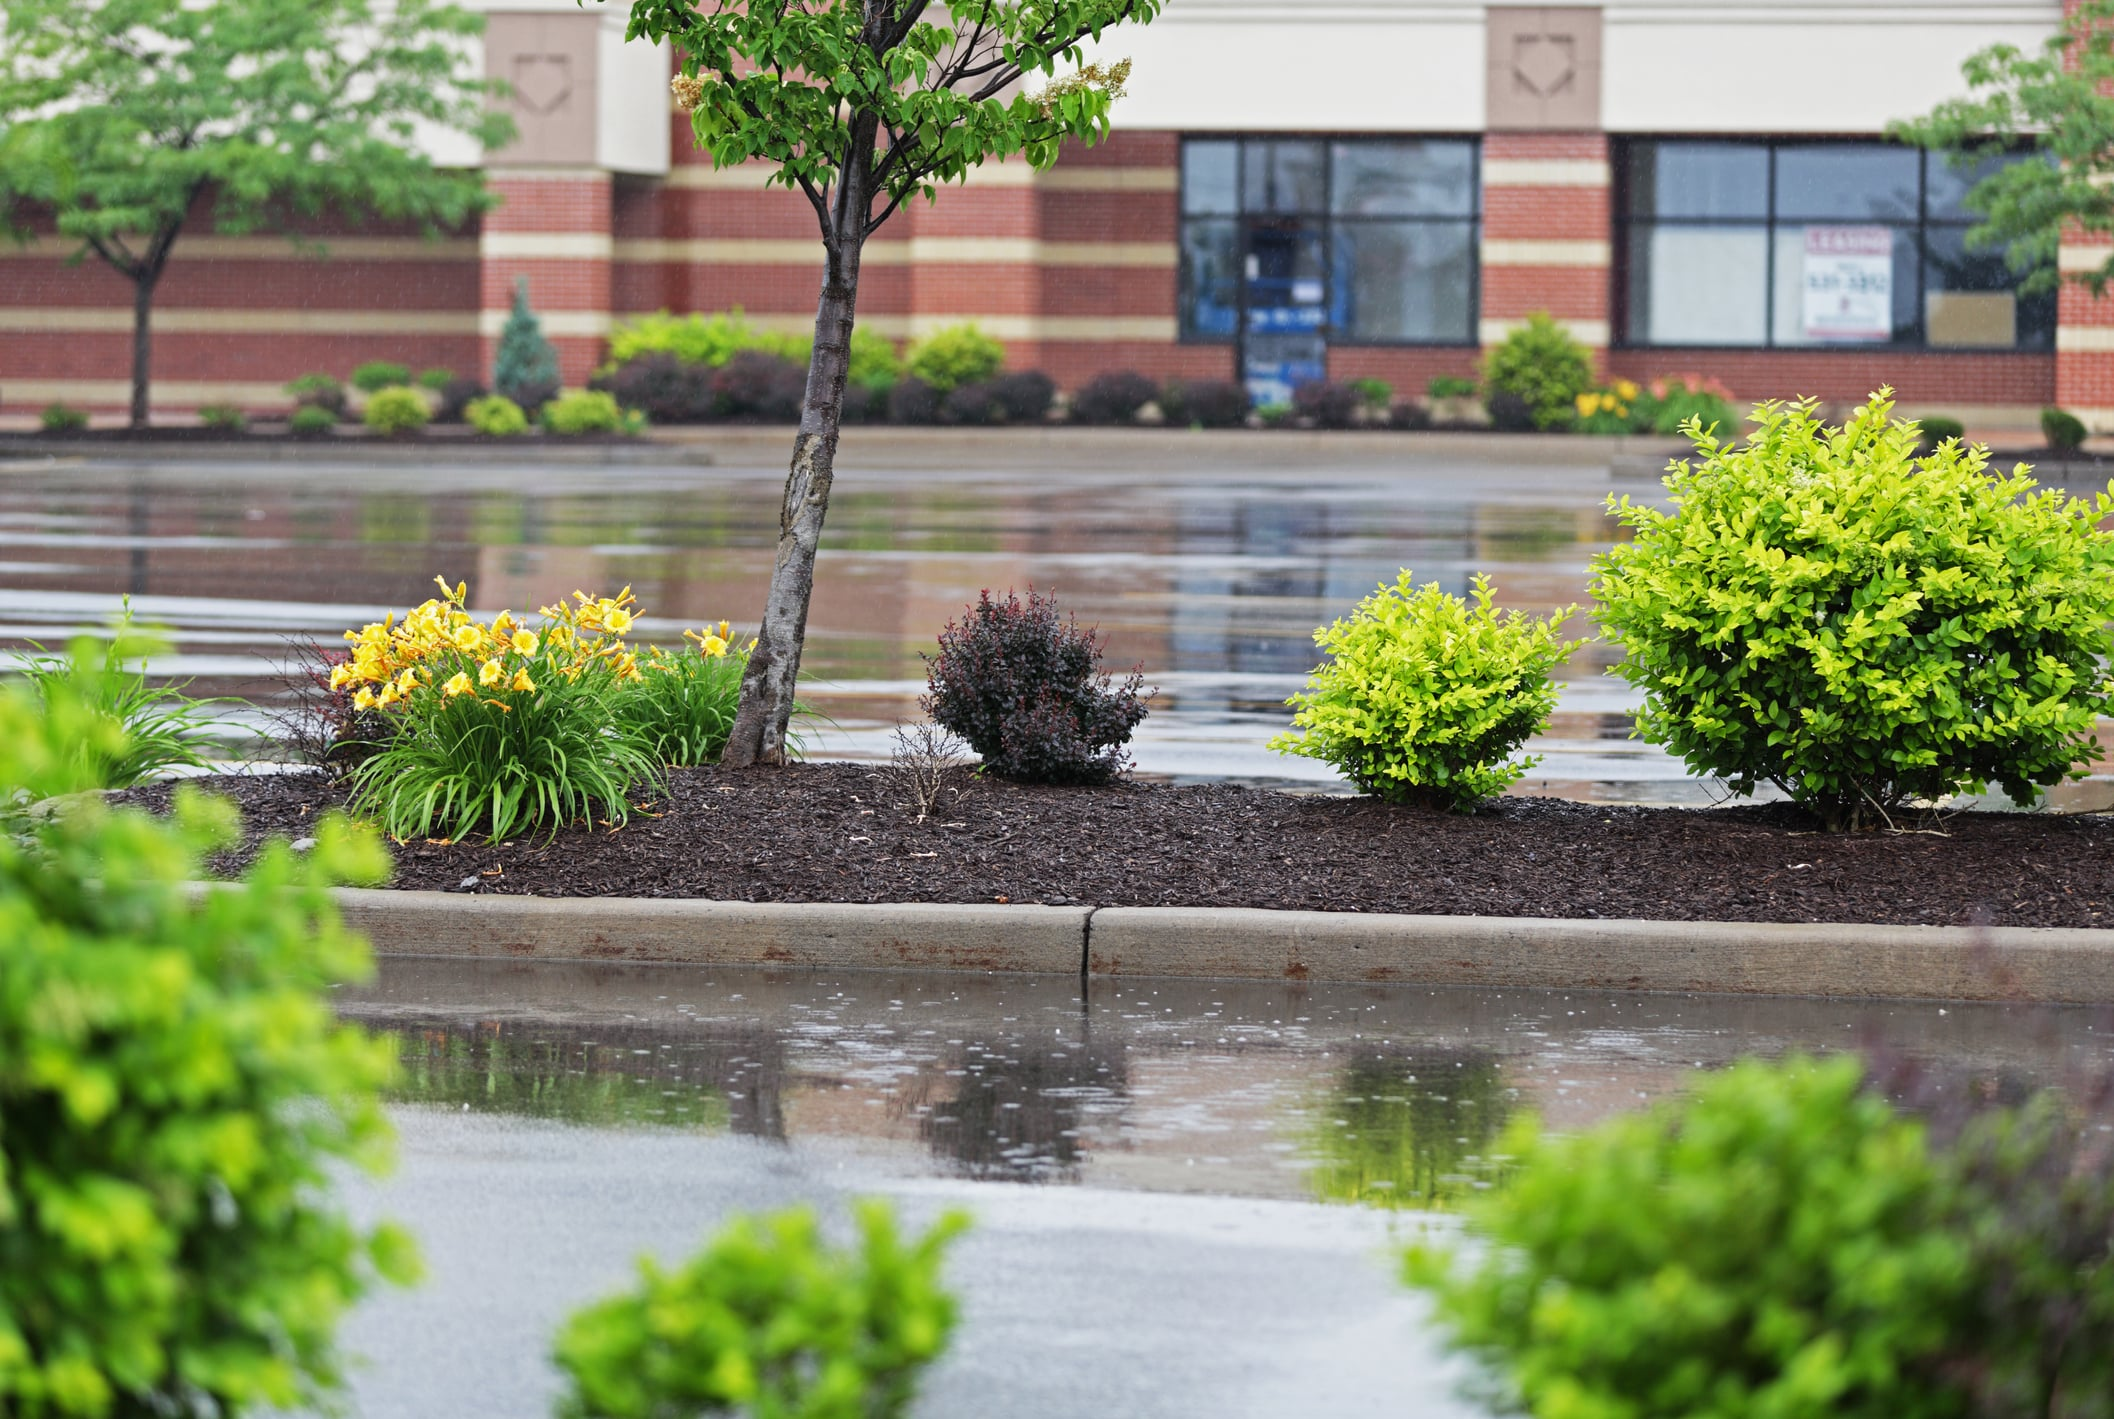 A retail parking lot divider complete with plants and a small tree.